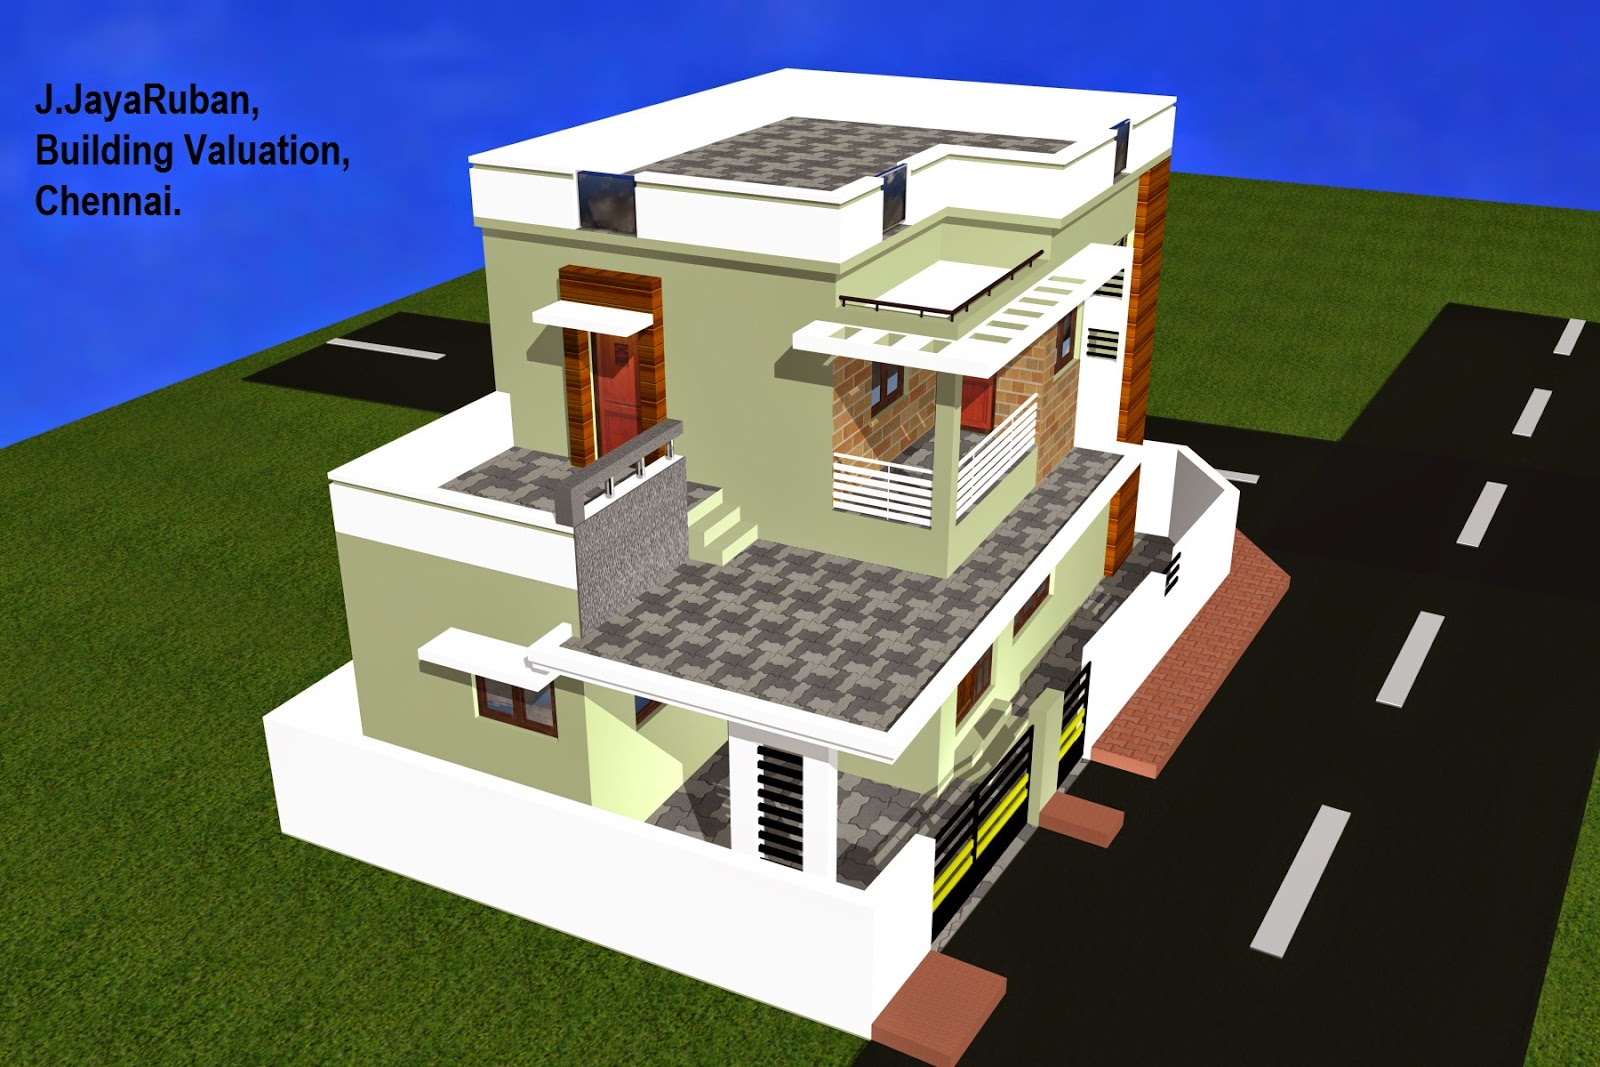 Building Valuation in India: Plan, 3d Elevation and Specifications for ...